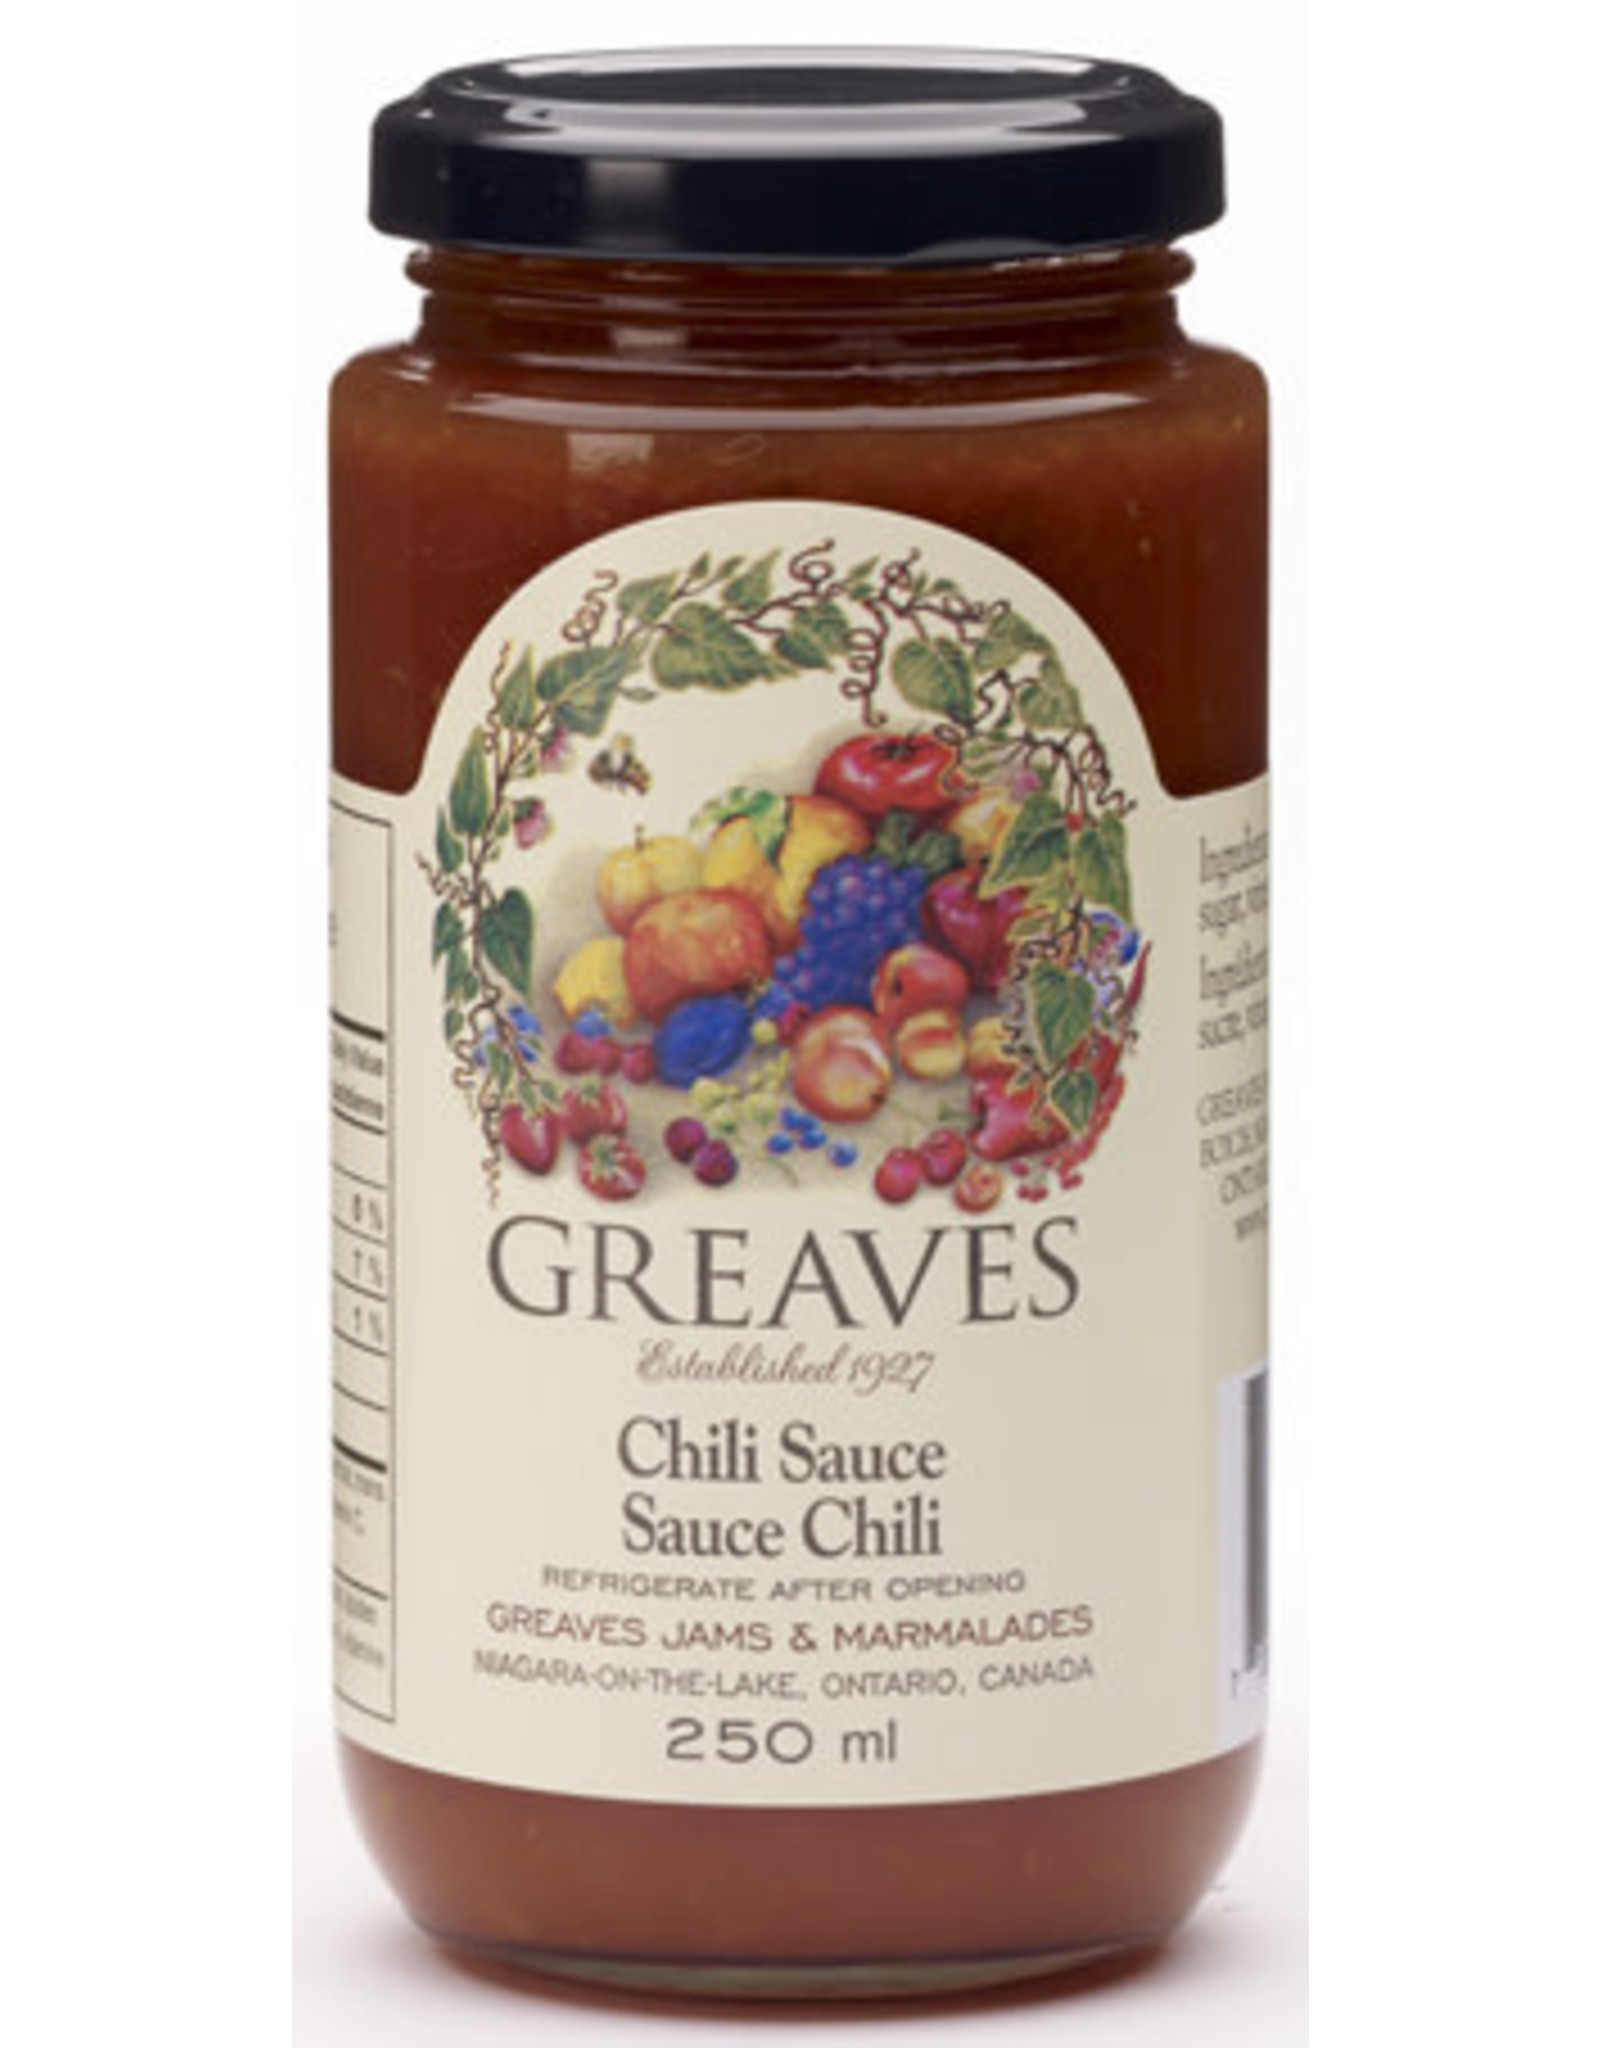 Greaves Jams & Marmalades Ltd. Greaves, Chili Sauce, 250ml